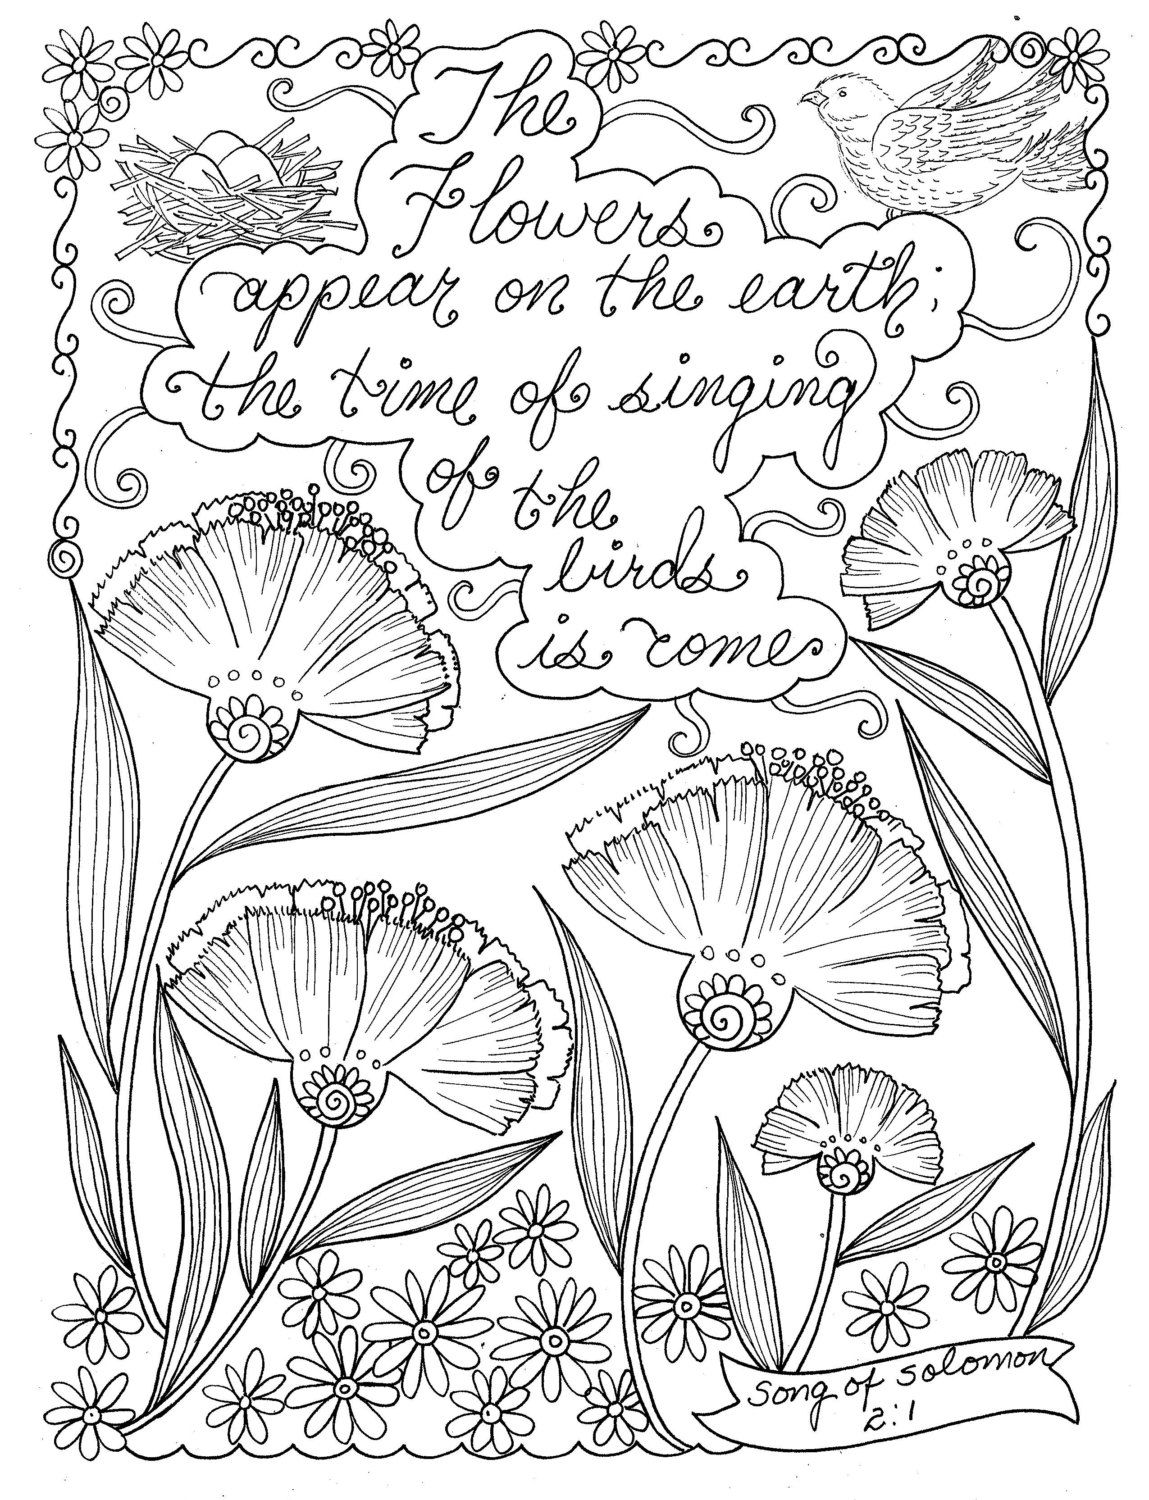 Scripture Garden Coloring Book Christian Coloring For All